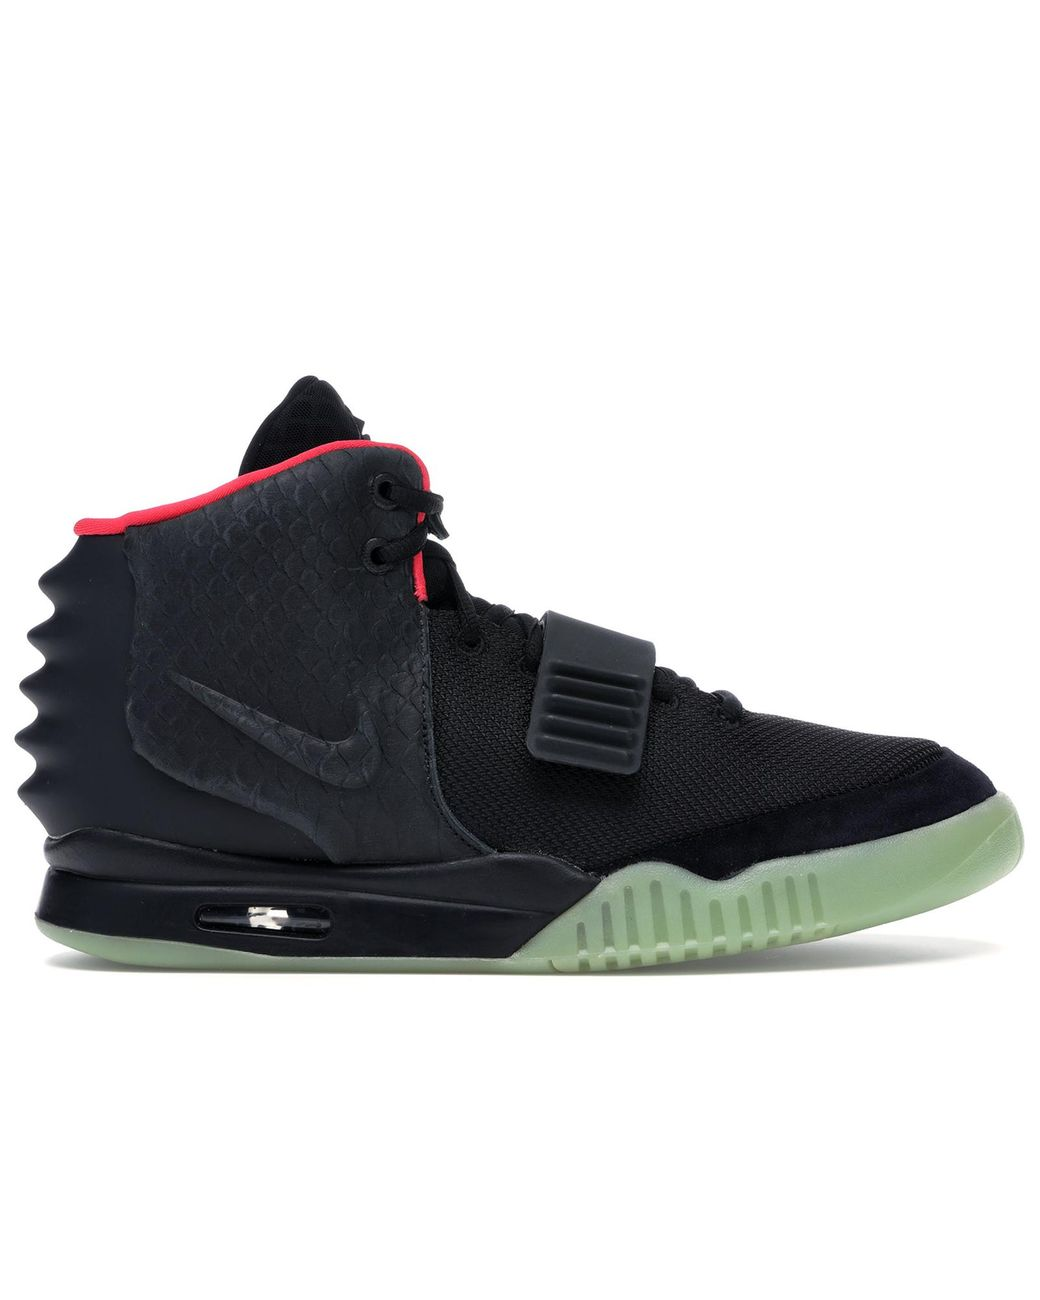 sale retailer 09231 8ade1 Men's Black Air Yeezy 2 Solar Red